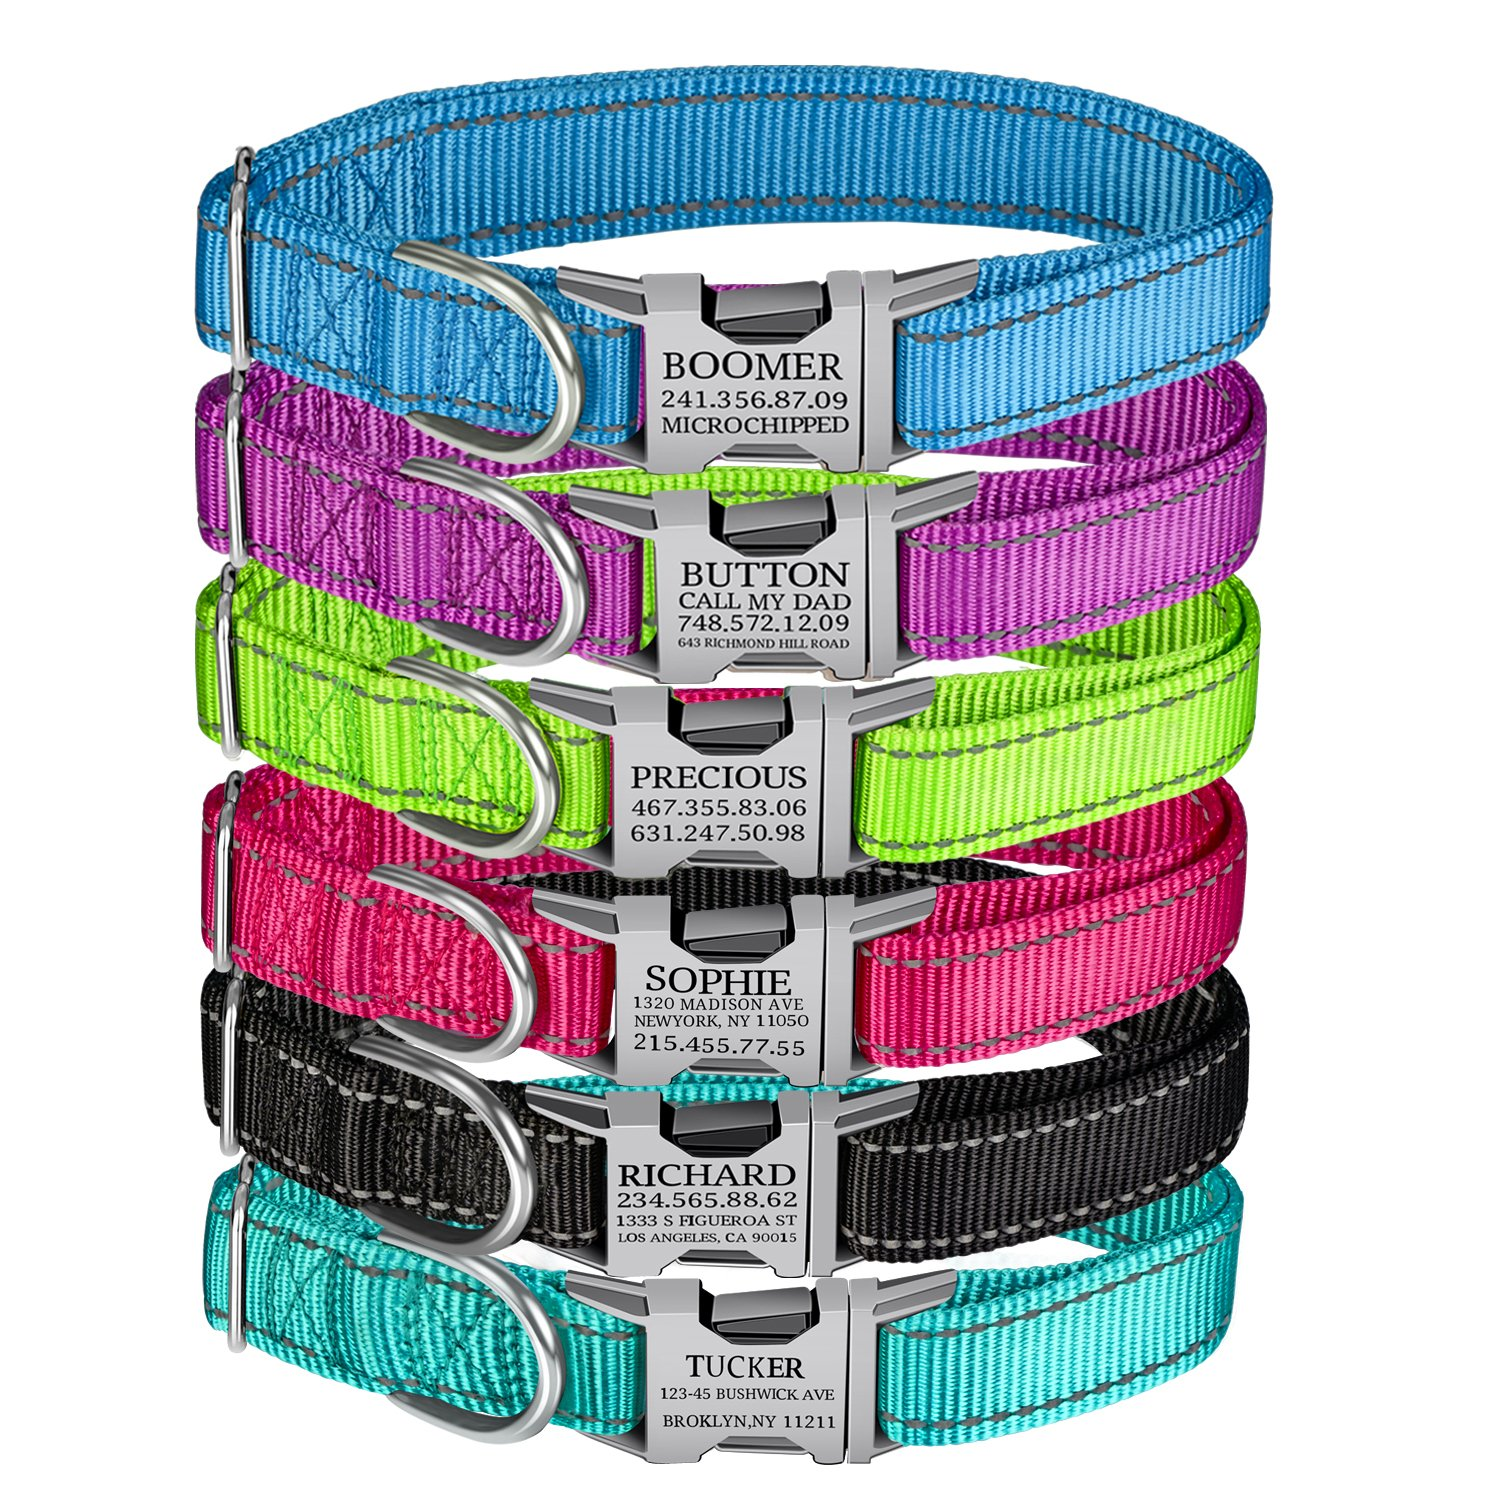 Custom Personalized Dog Collar Buckle Engraved with Pet Name & Phone Number for Small/Medium/Large Breed Dog -Nylon Webbing with 2 Reflective thread, 6 ColorsCustomized, Green)